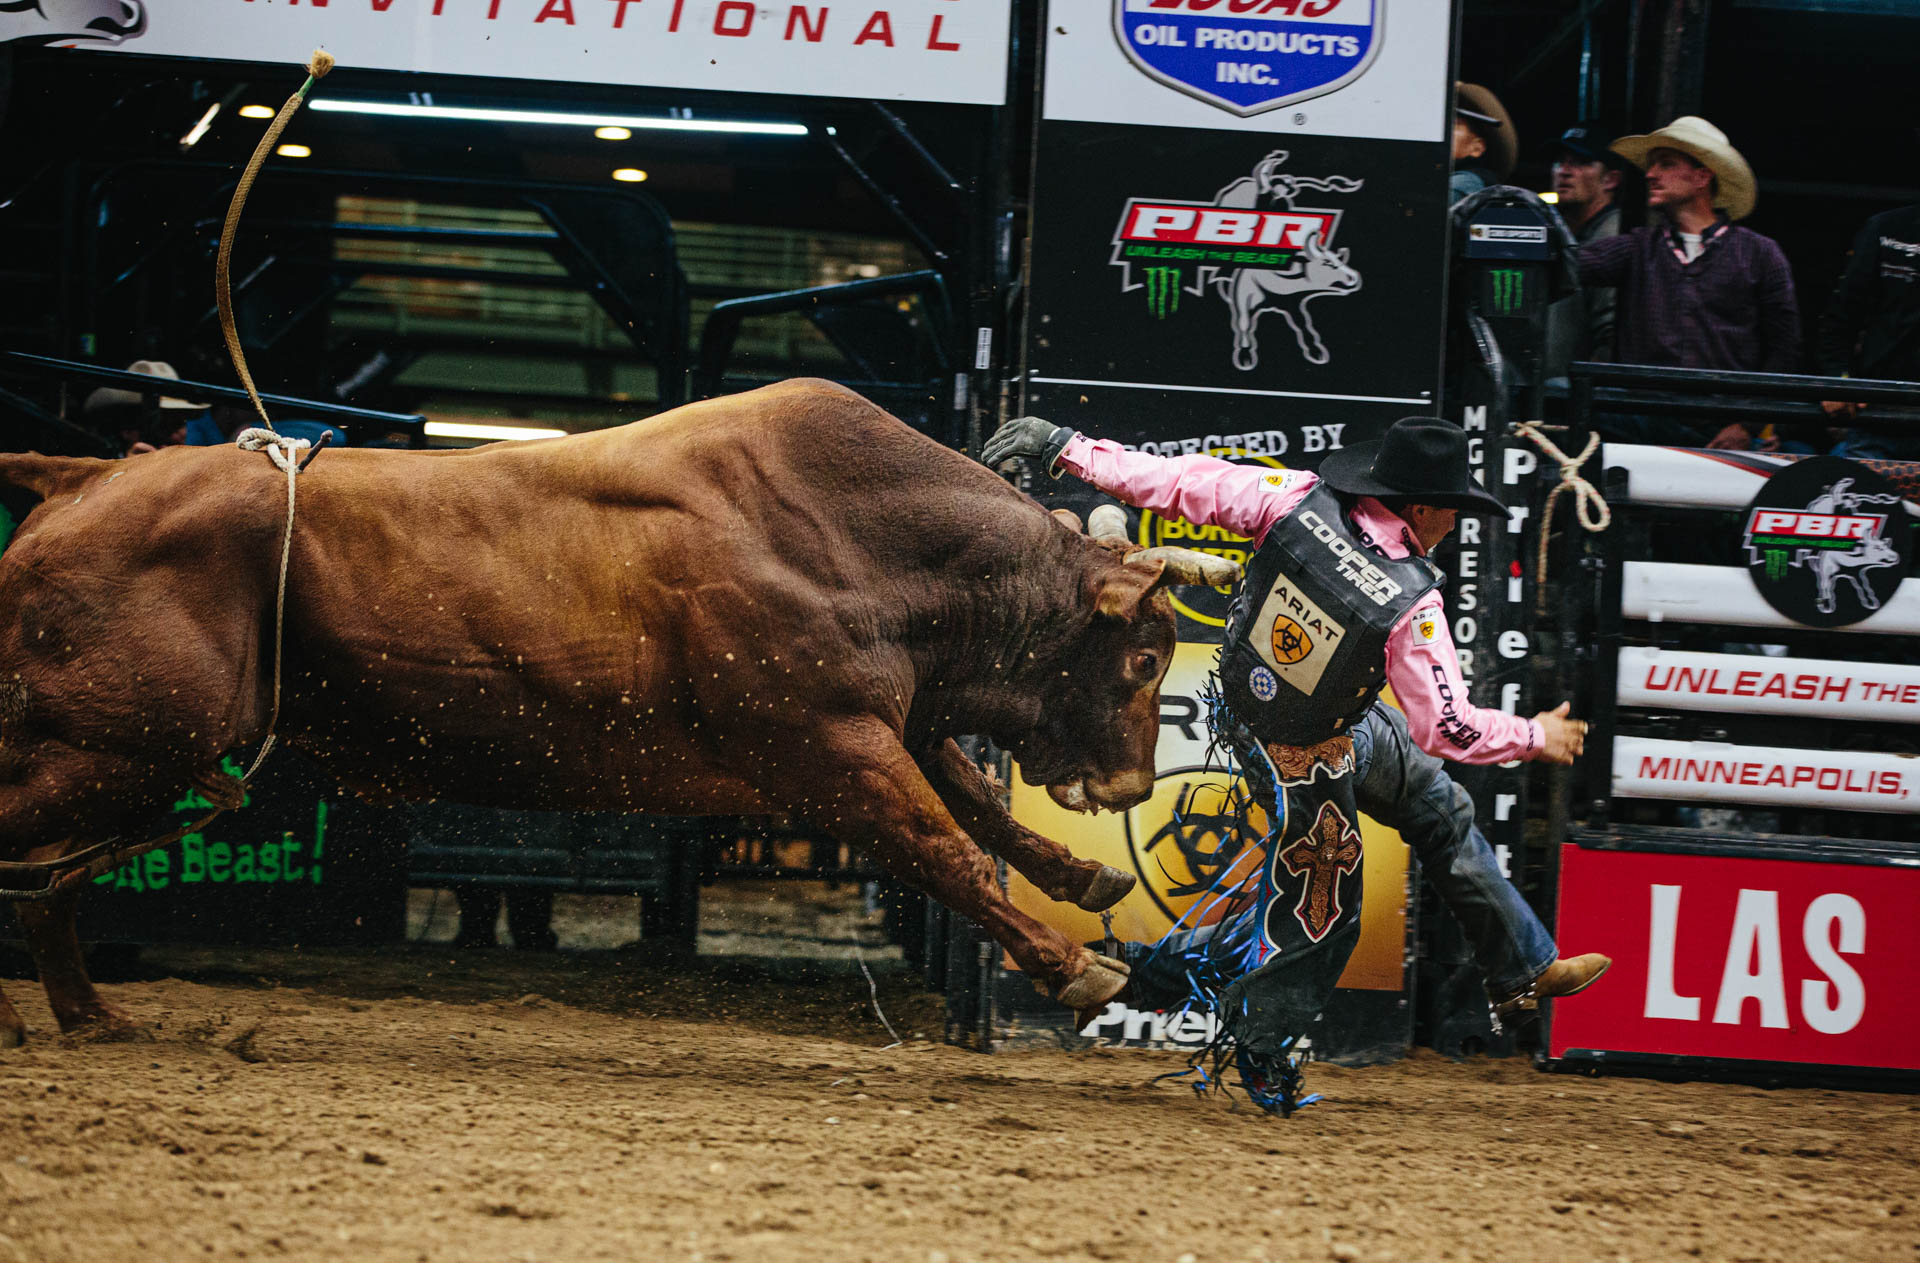 pbr-minneapolis-invitational-bull-chase.JPG